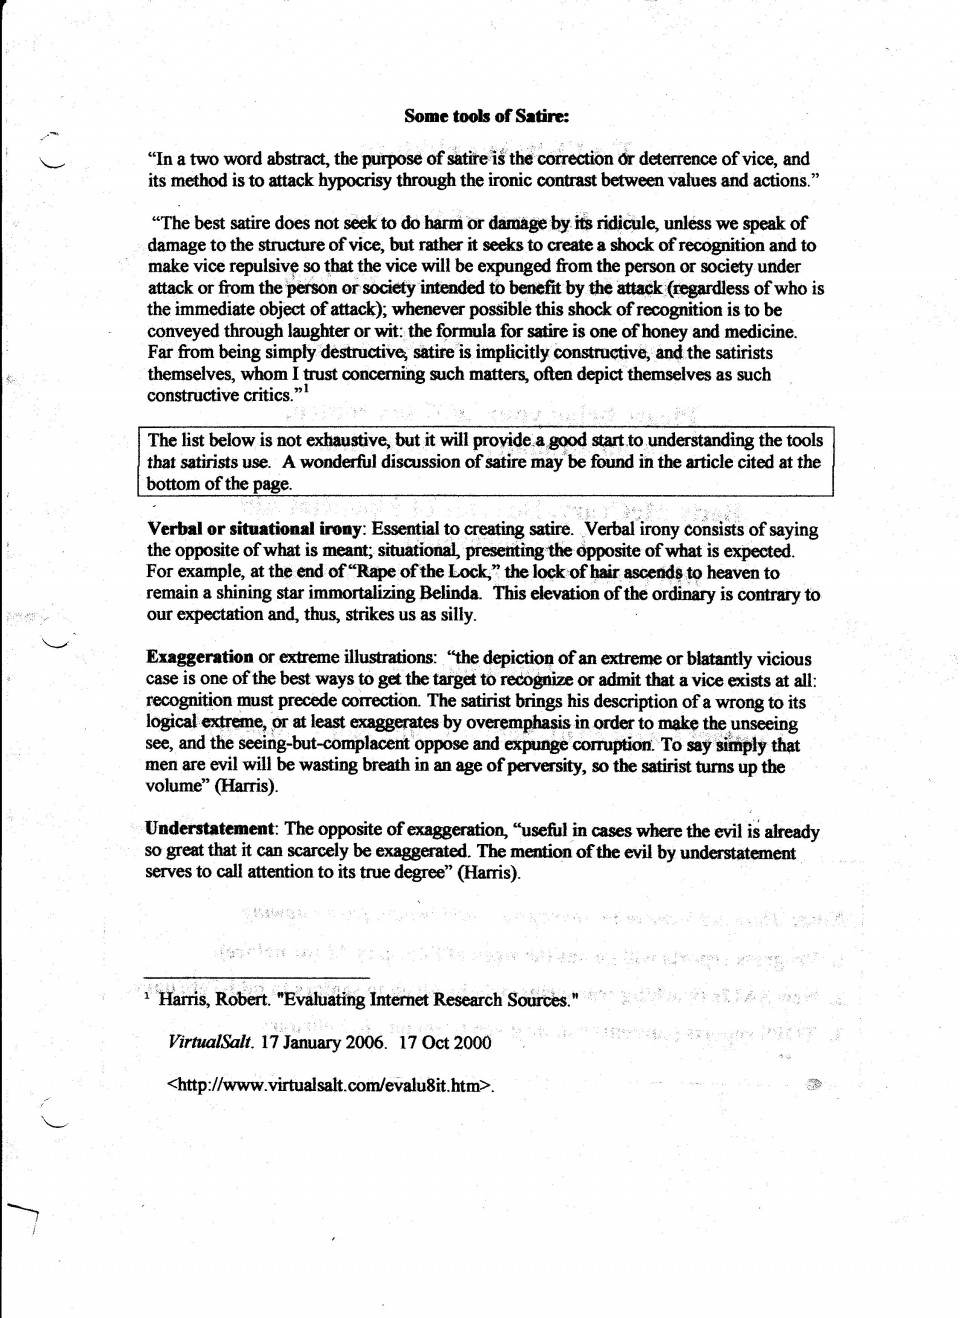 008 How To Write Satire Essays Handout Satirical Topics For High School Ideas Proposal Topic Funny Smoking Good Process Analysis Fascinating A Essay An Introduction Essay-example On Obesity 960